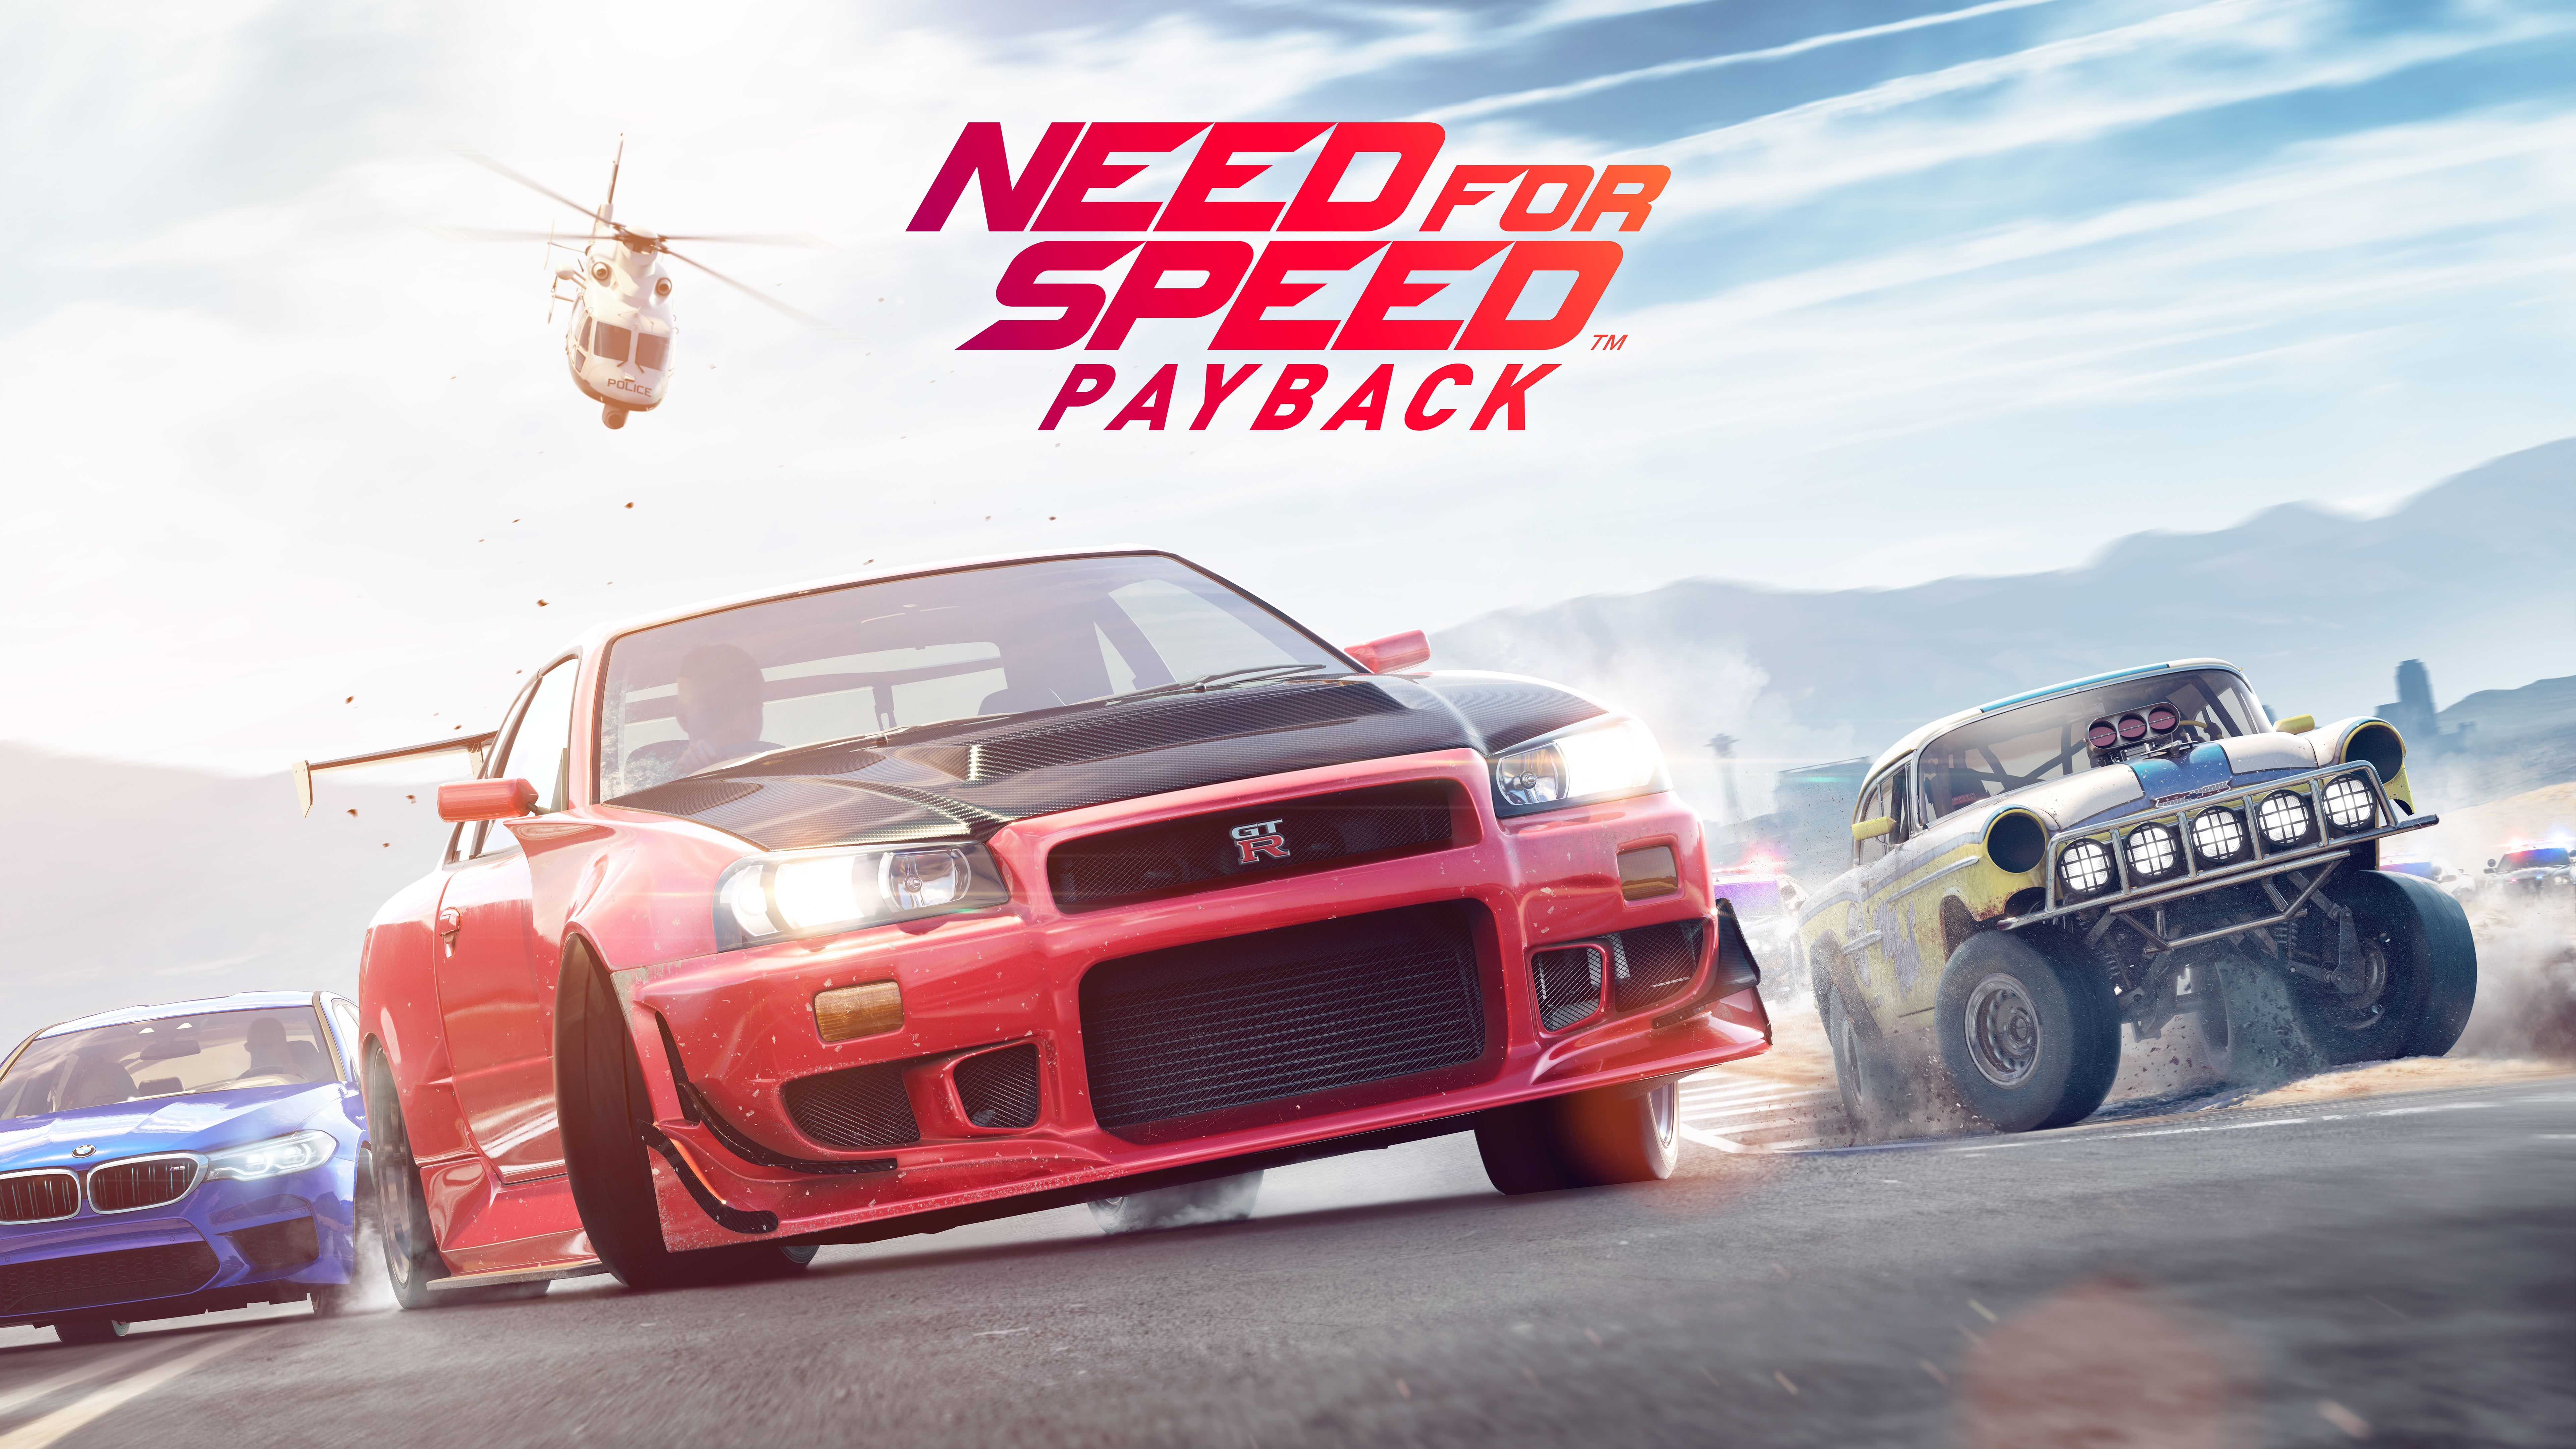 Need For Speed Payback K Car Chase Need For Speed Payback - Cool cars under 8k